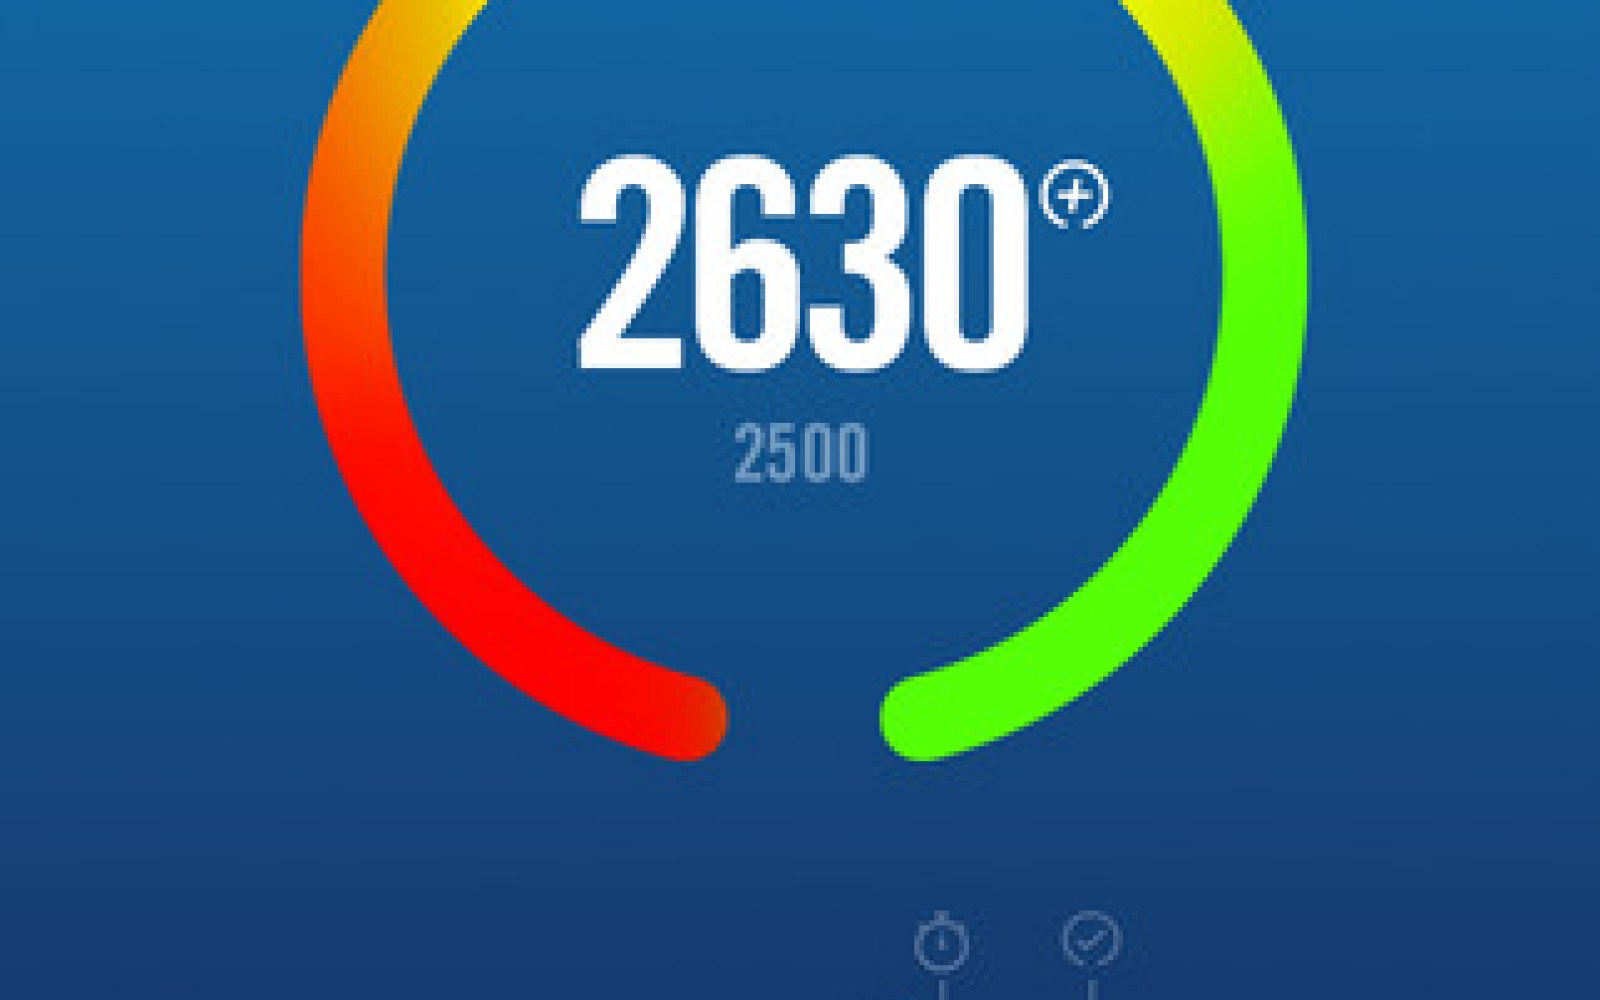 Nike+ FuelBand iPhone app adds HealthKit integration, no longer requires a band